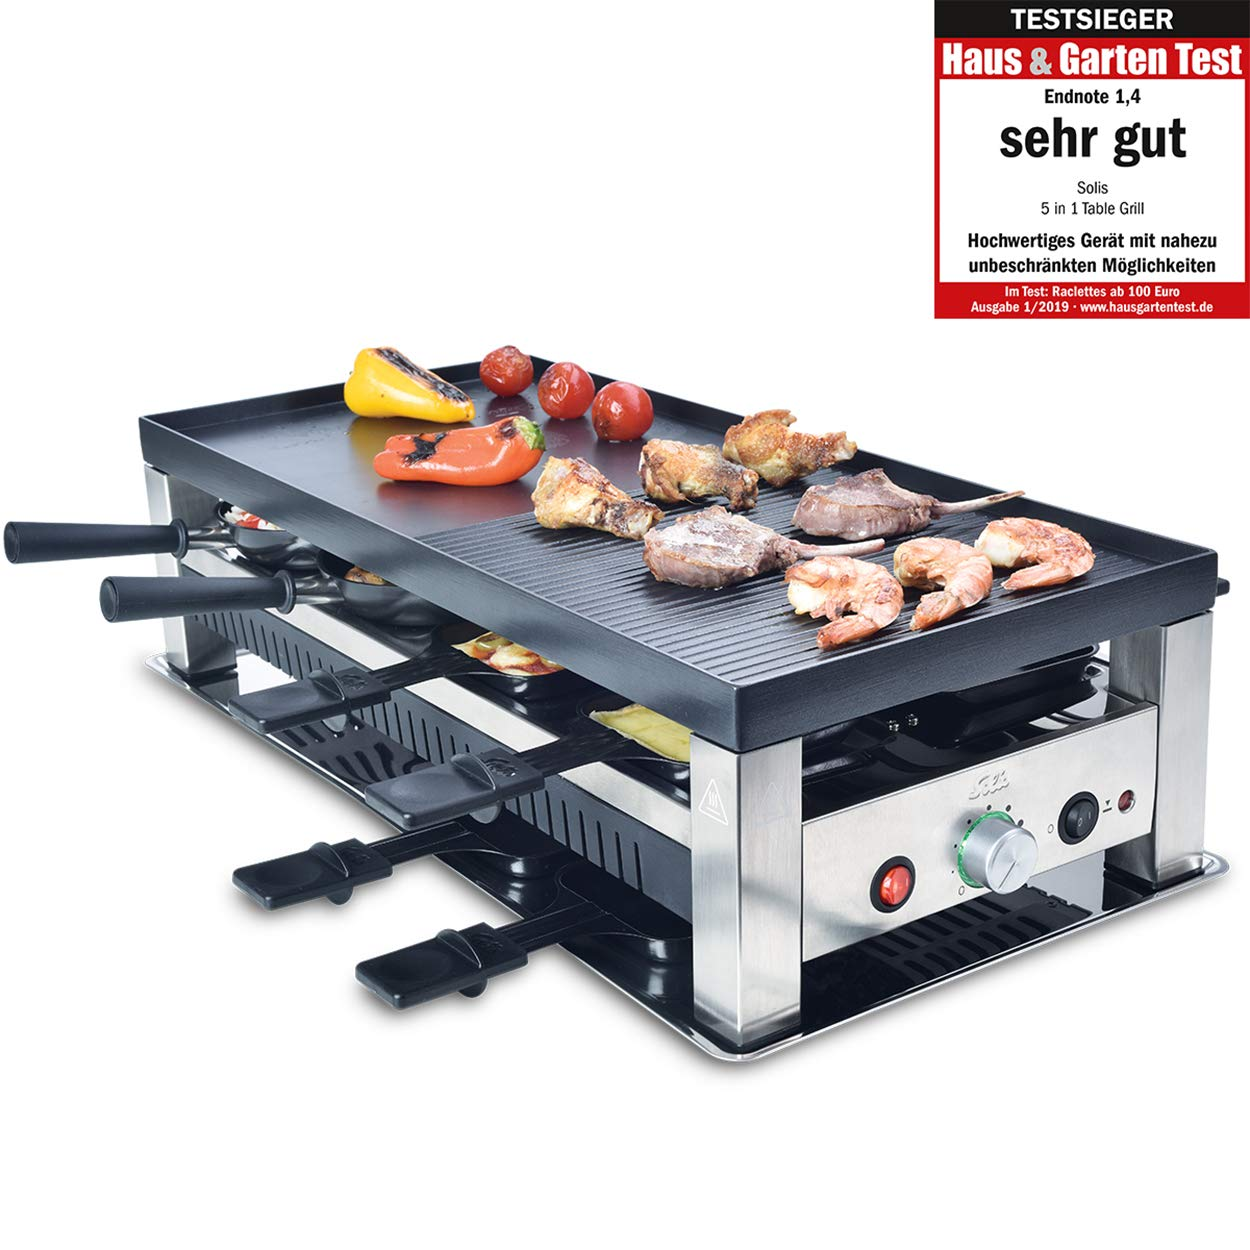 Solis Table Grill 5 in 1 Parrilla Mesa Eléctrico 1400W Negro ...